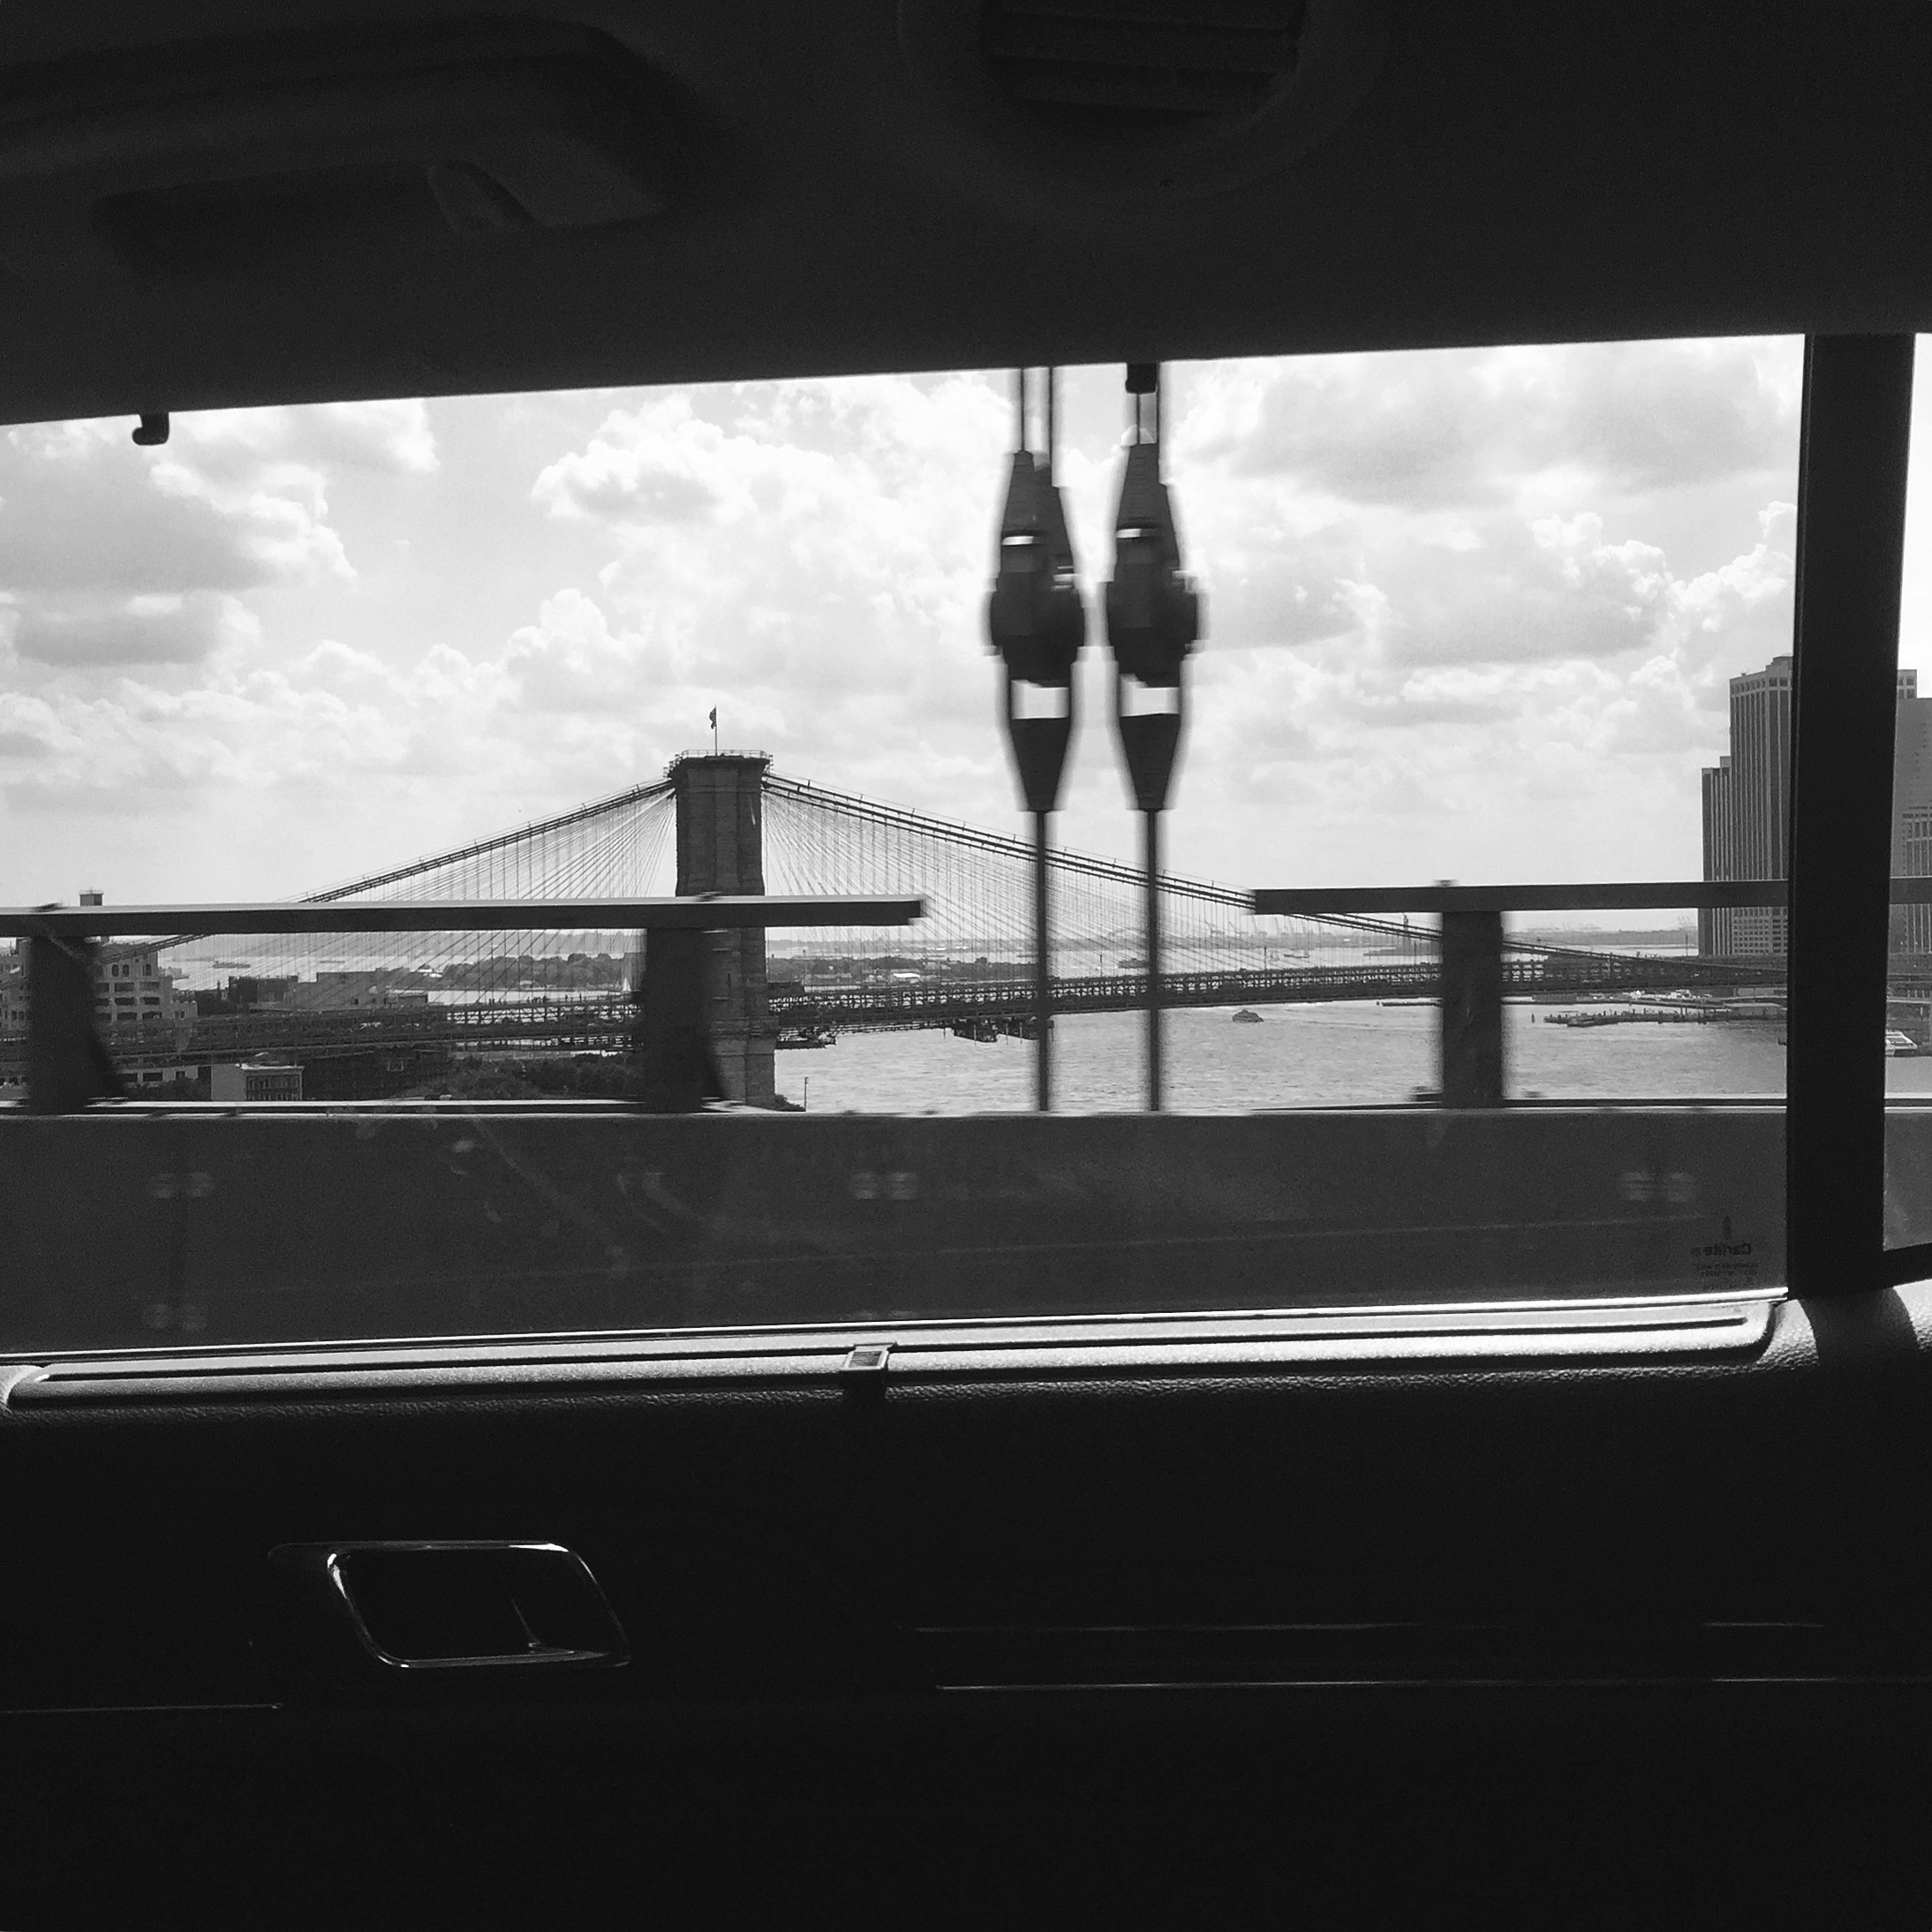 Cab riding over the manhattan bridge